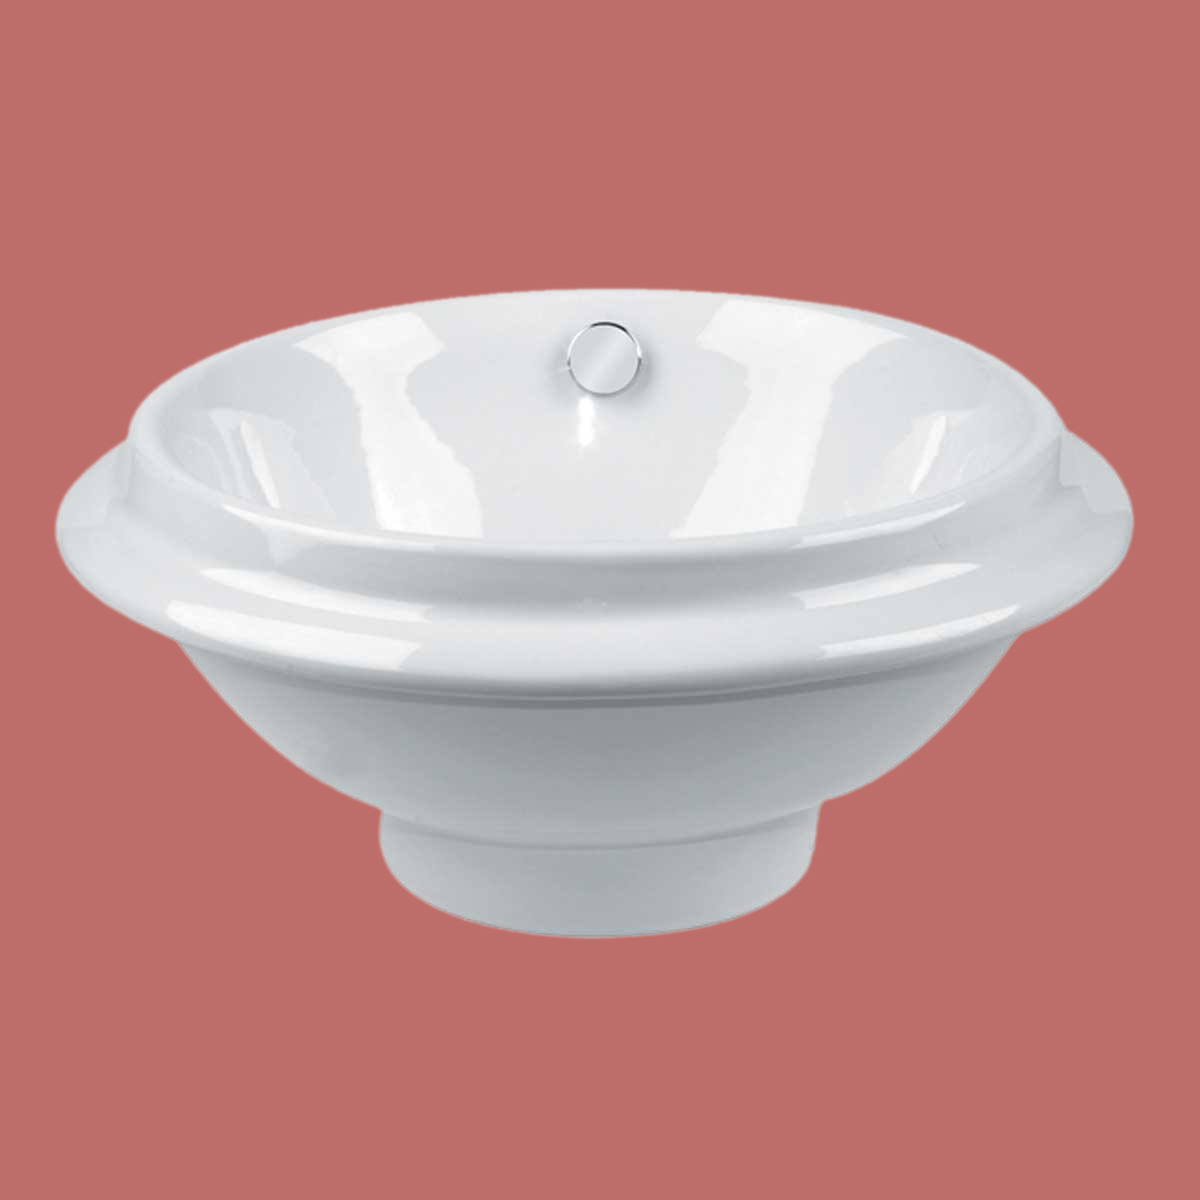 Bathroom Vessel Sink White China Artisan Overflow